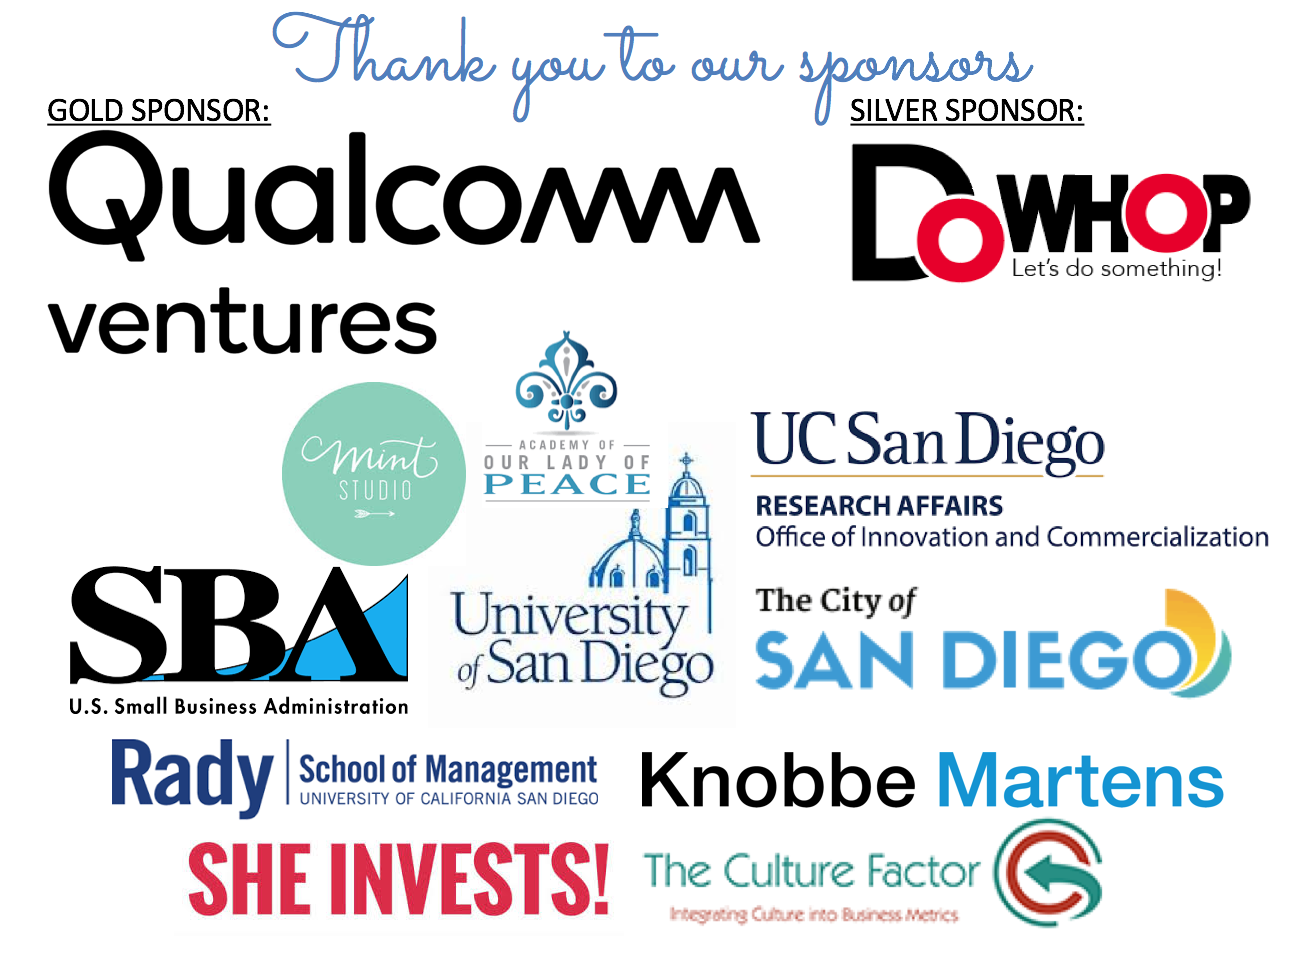 Event Sponsors for Hera Venture Summit 2018: GOLD:Qualcomm Ventures, SILVER: DoWhop, University of Sn Diego, Our Lady of Peace, Mint studios, She Invests!, Knobbe Martens, The Culture Factor, Rady School of Management at UCSD, The City of San Diego, SBA,  and the Office of Innovation and Commercialization at UCSD.